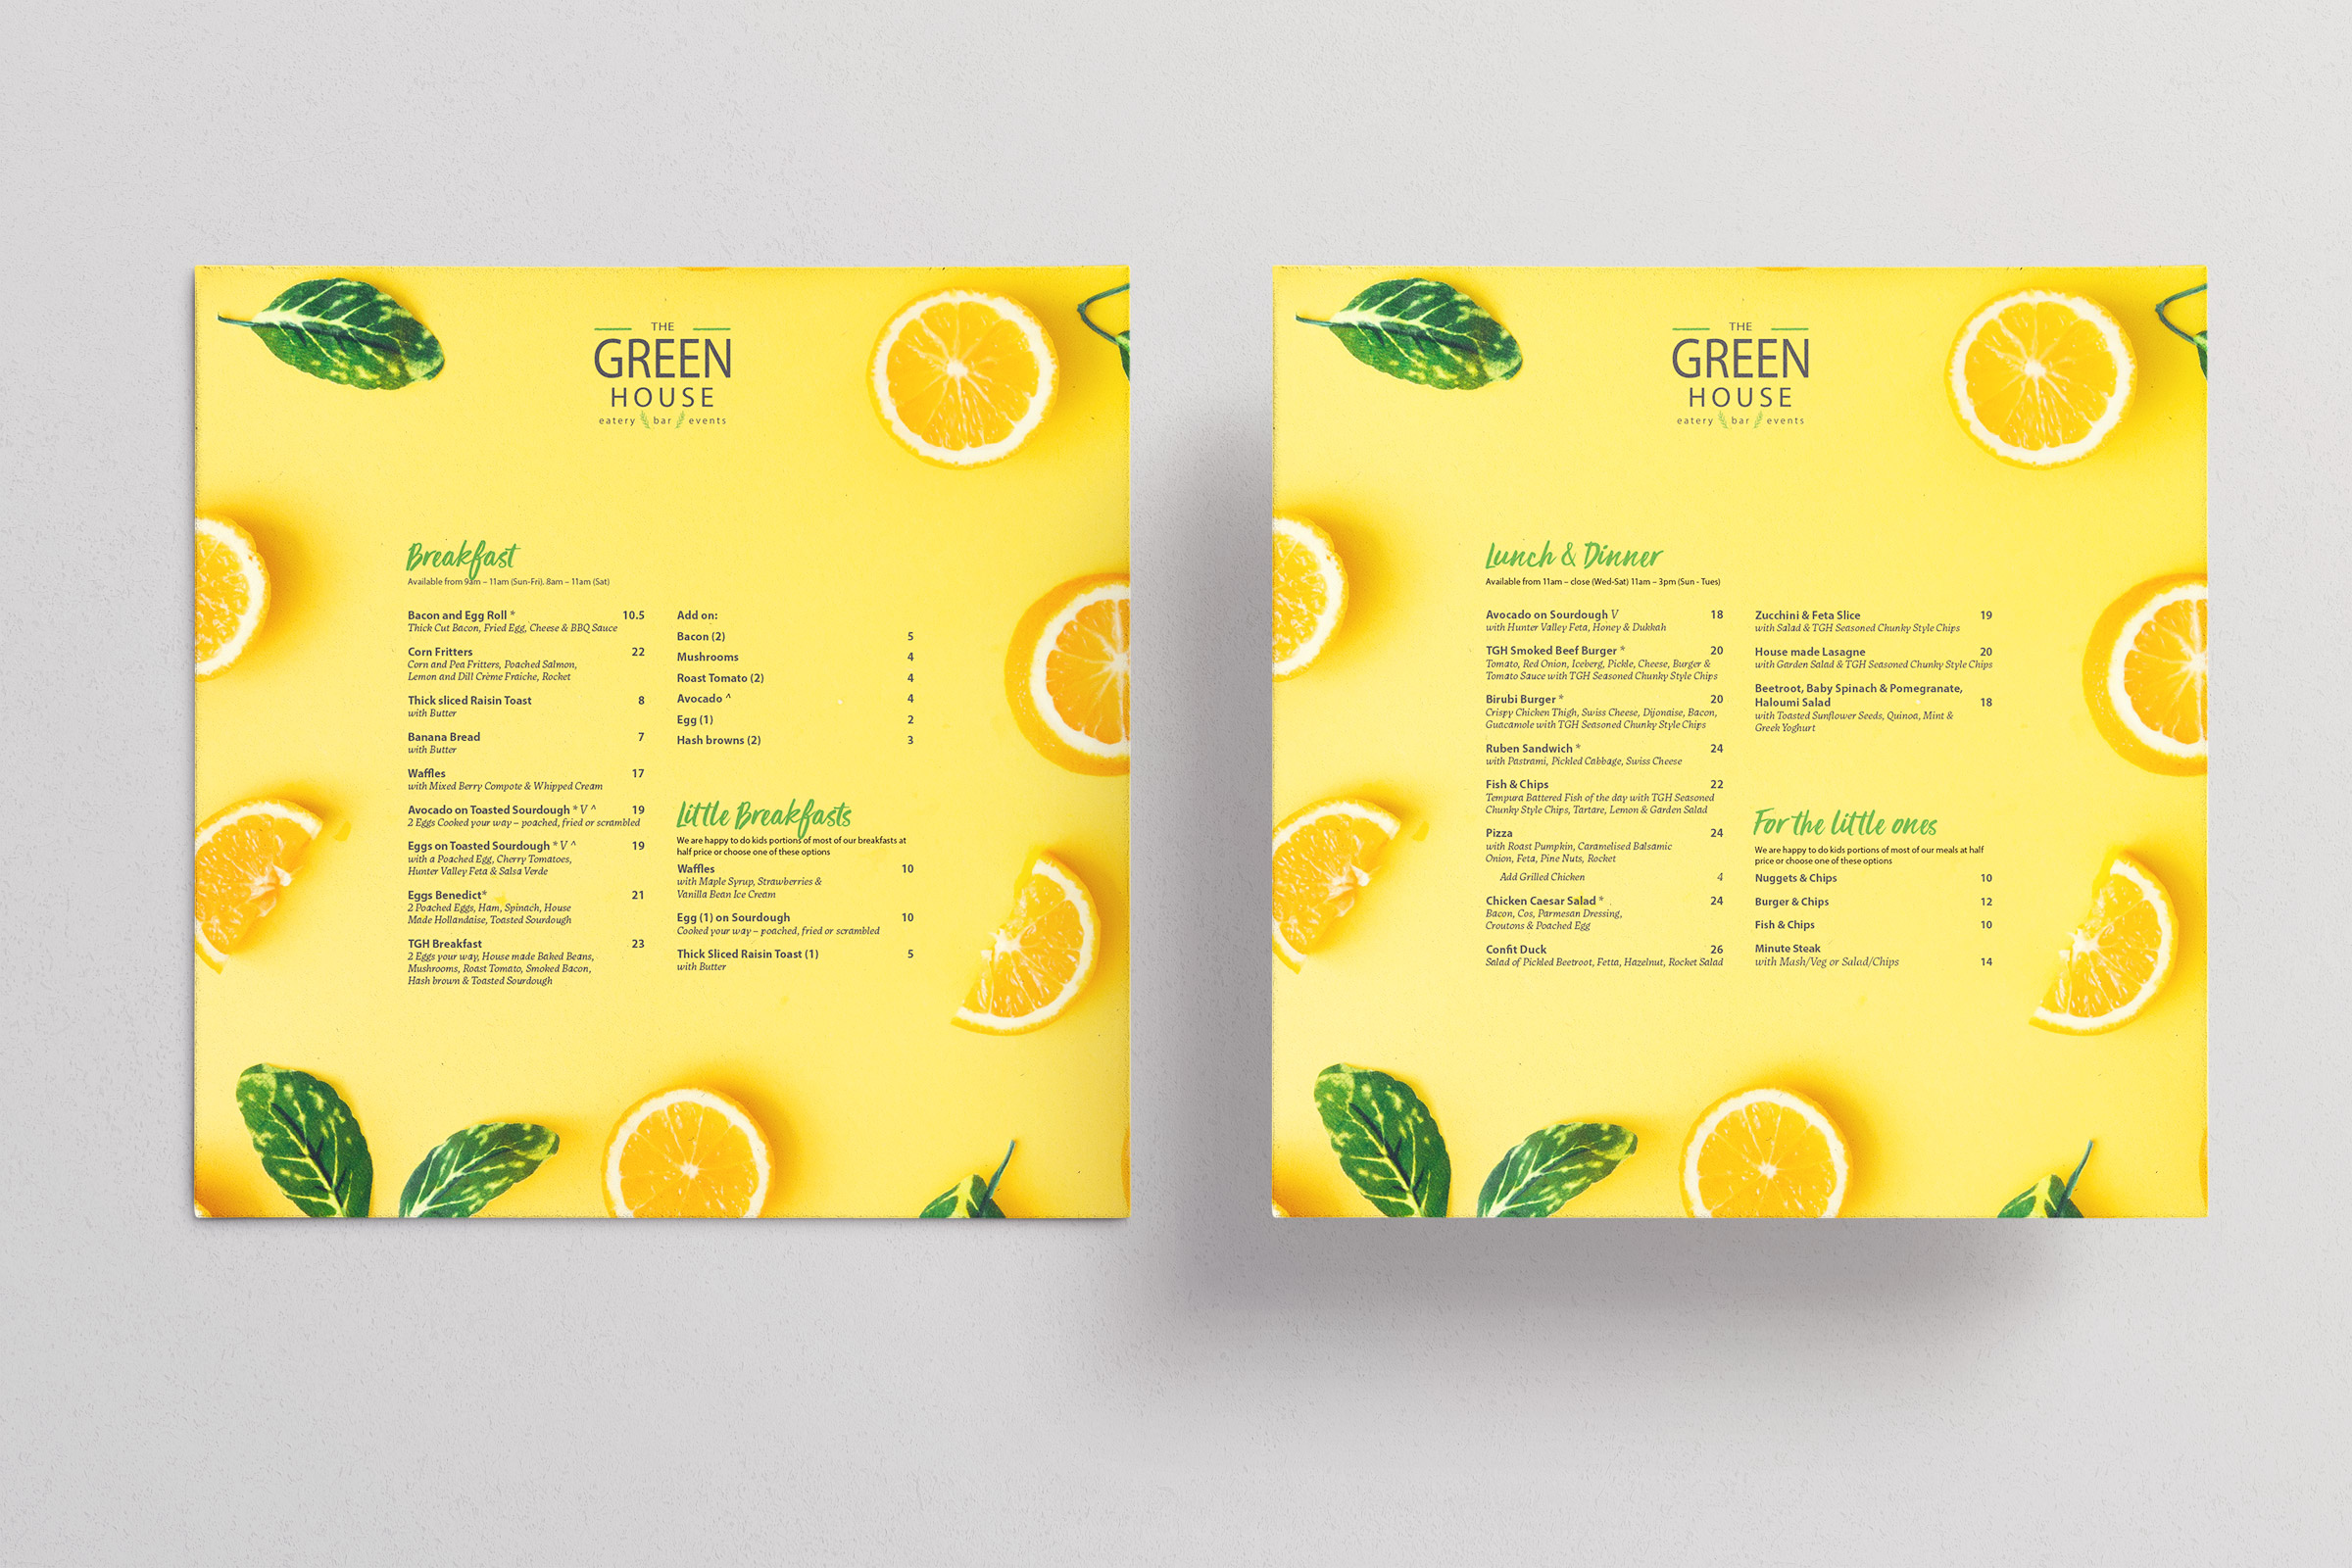 The Greenhouse Eatery Menu design, featuring fresh ingredients photography.